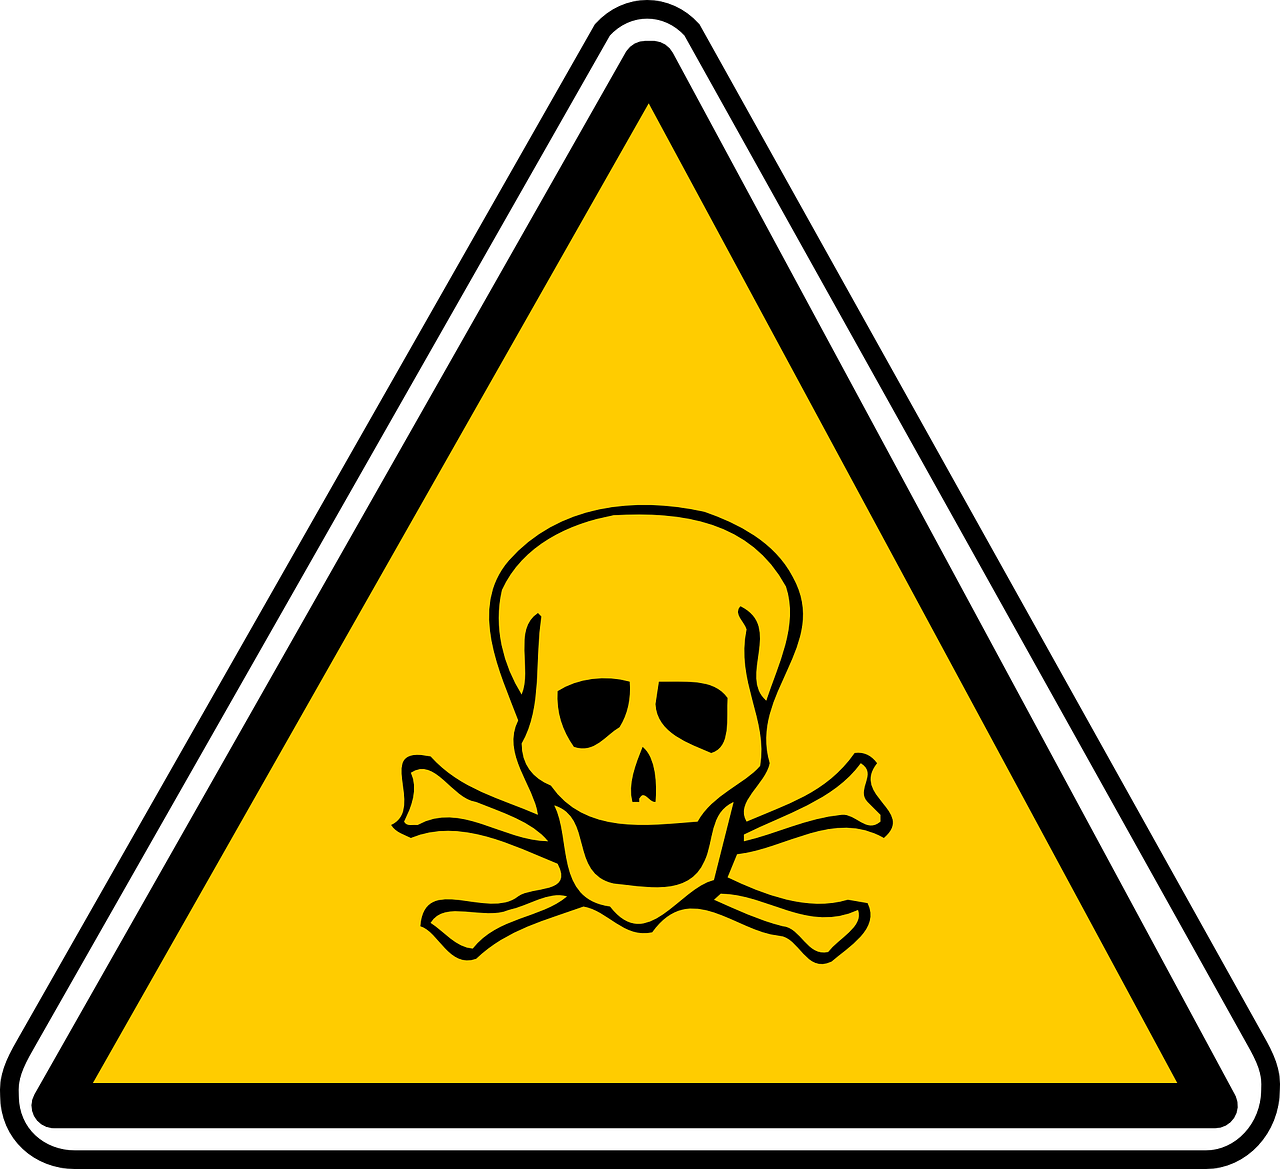 Danger, Warning, Skull And Crossbones, Sign, Dangerous